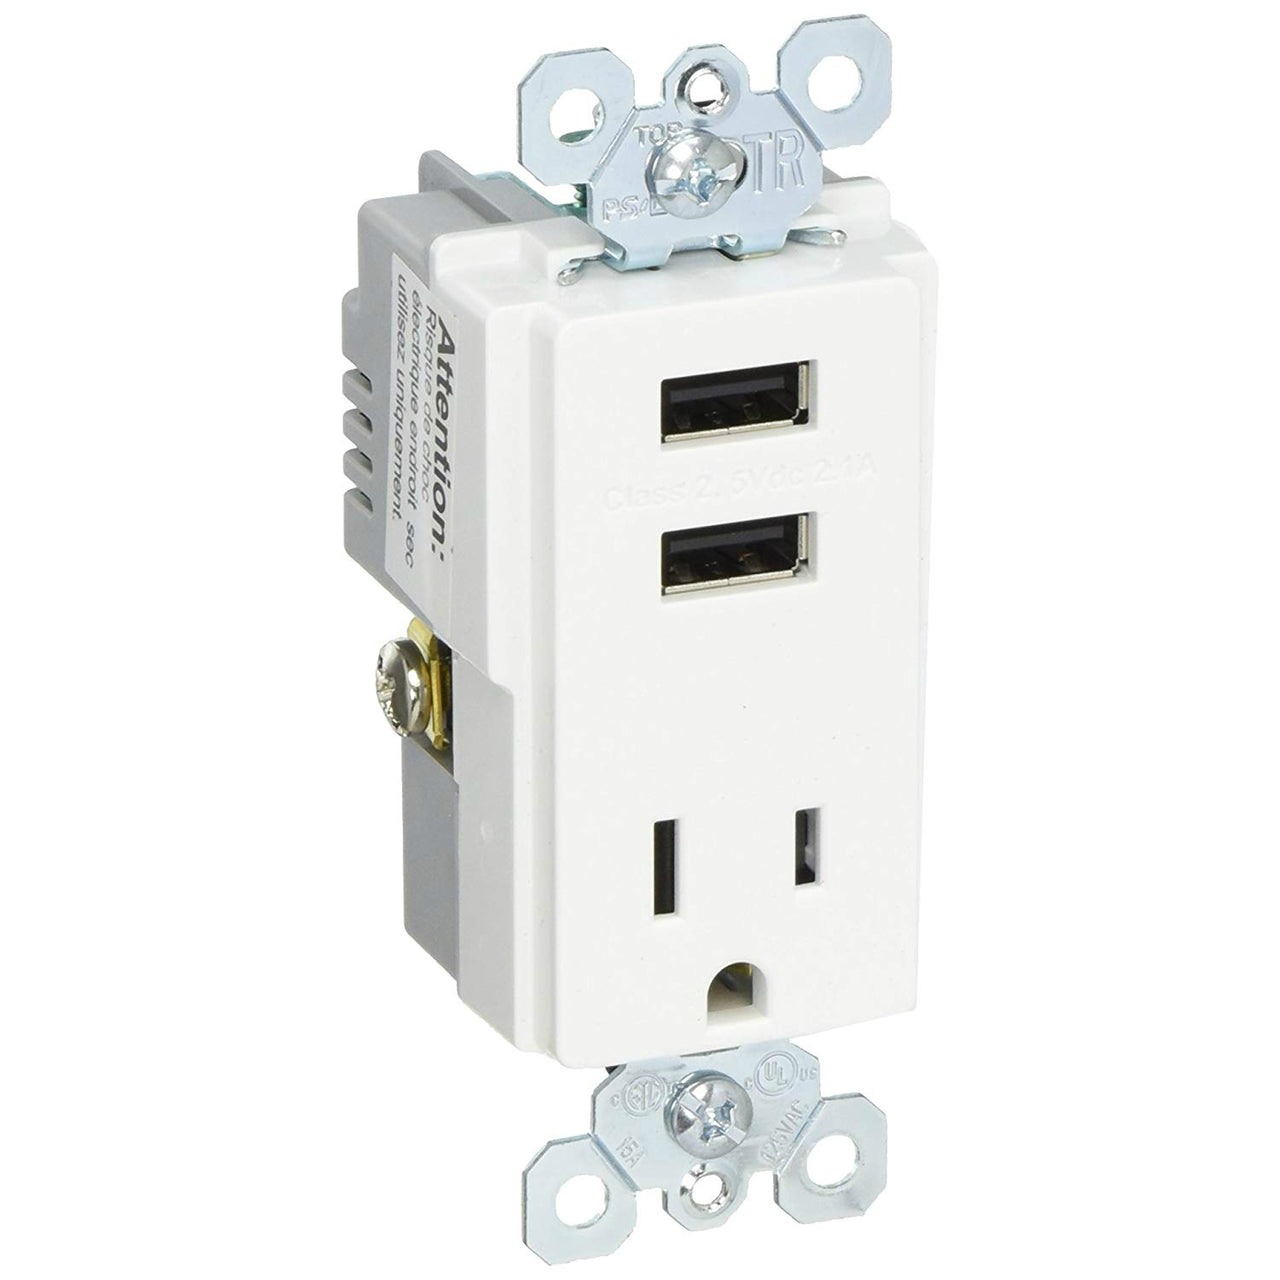 3 Legrand Pass /& Seymour White Tamper Resistant 15A 125V Receptacle 2.1A USB NEW